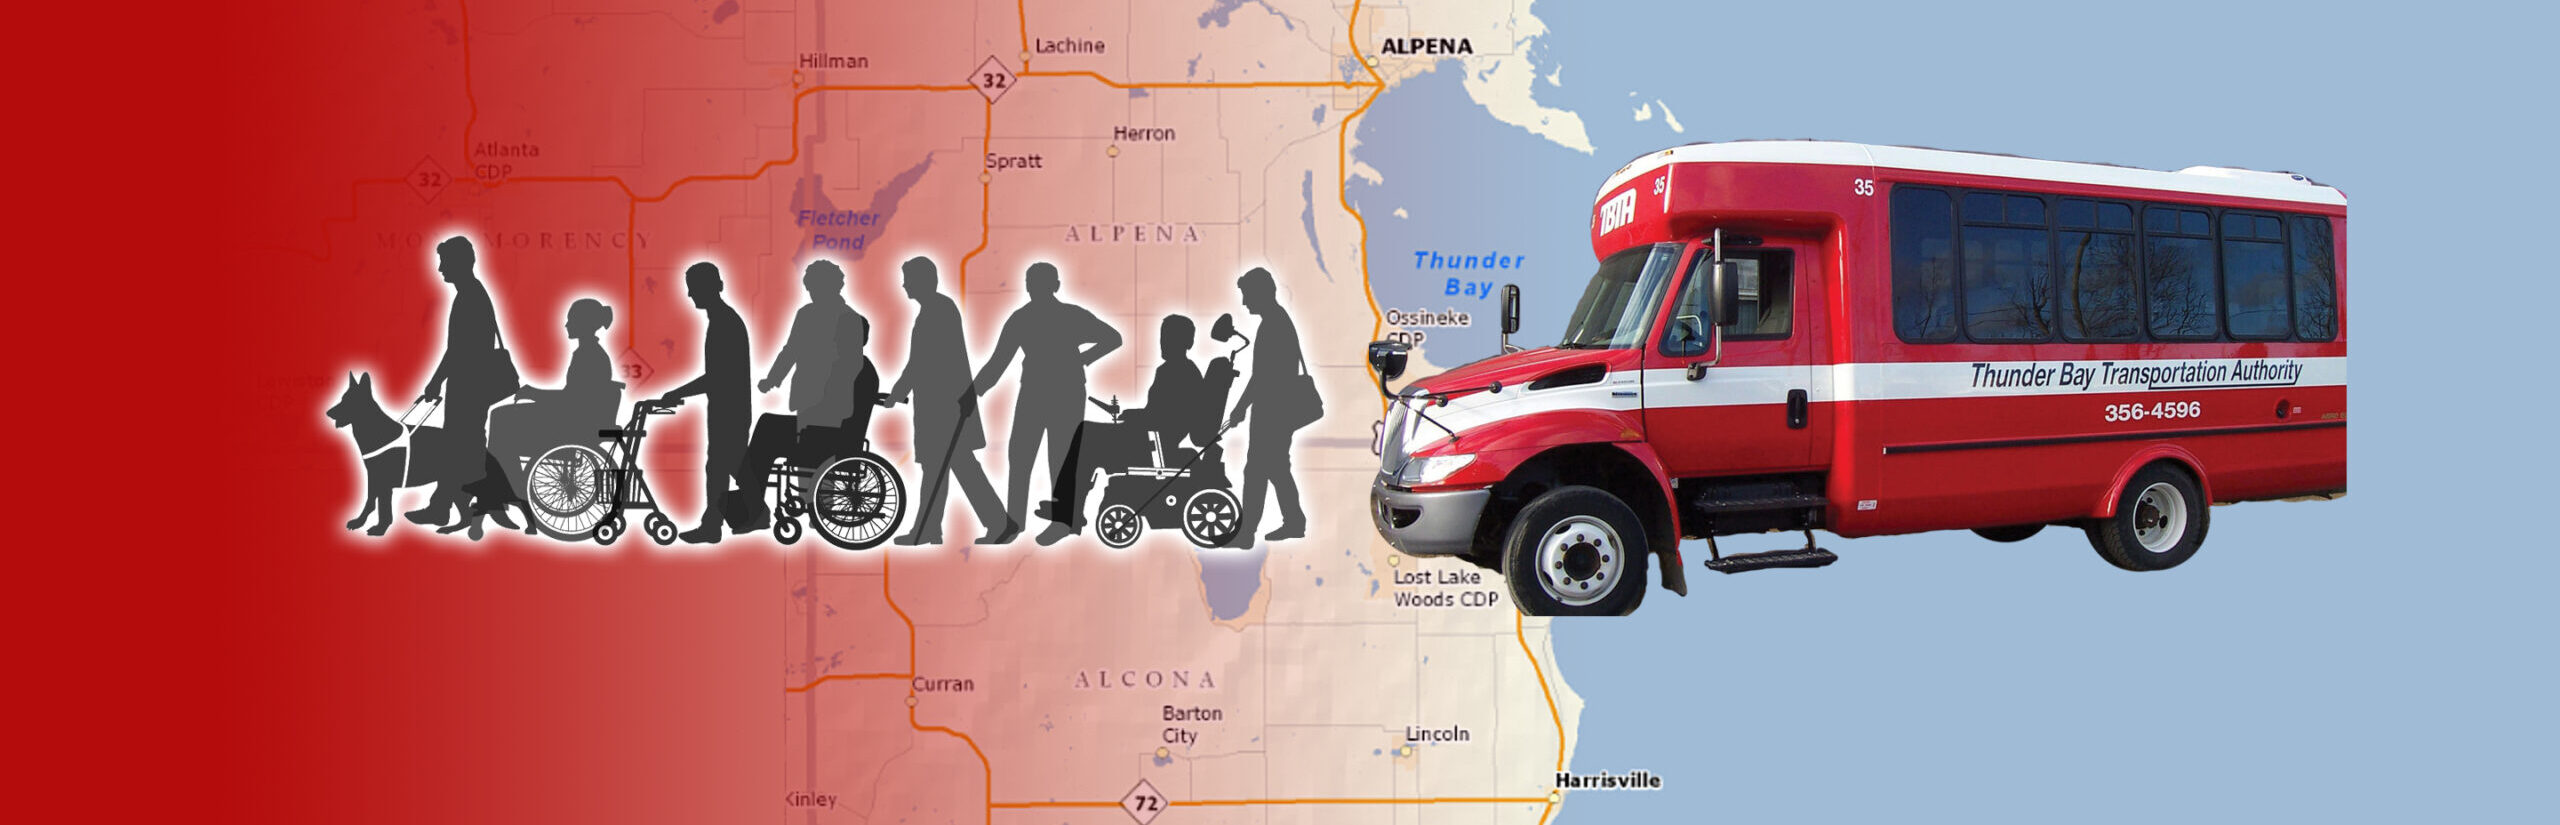 TBTA bus with silhouette of people to ride over a map of Alpena, Alcona and Montmorency Counties